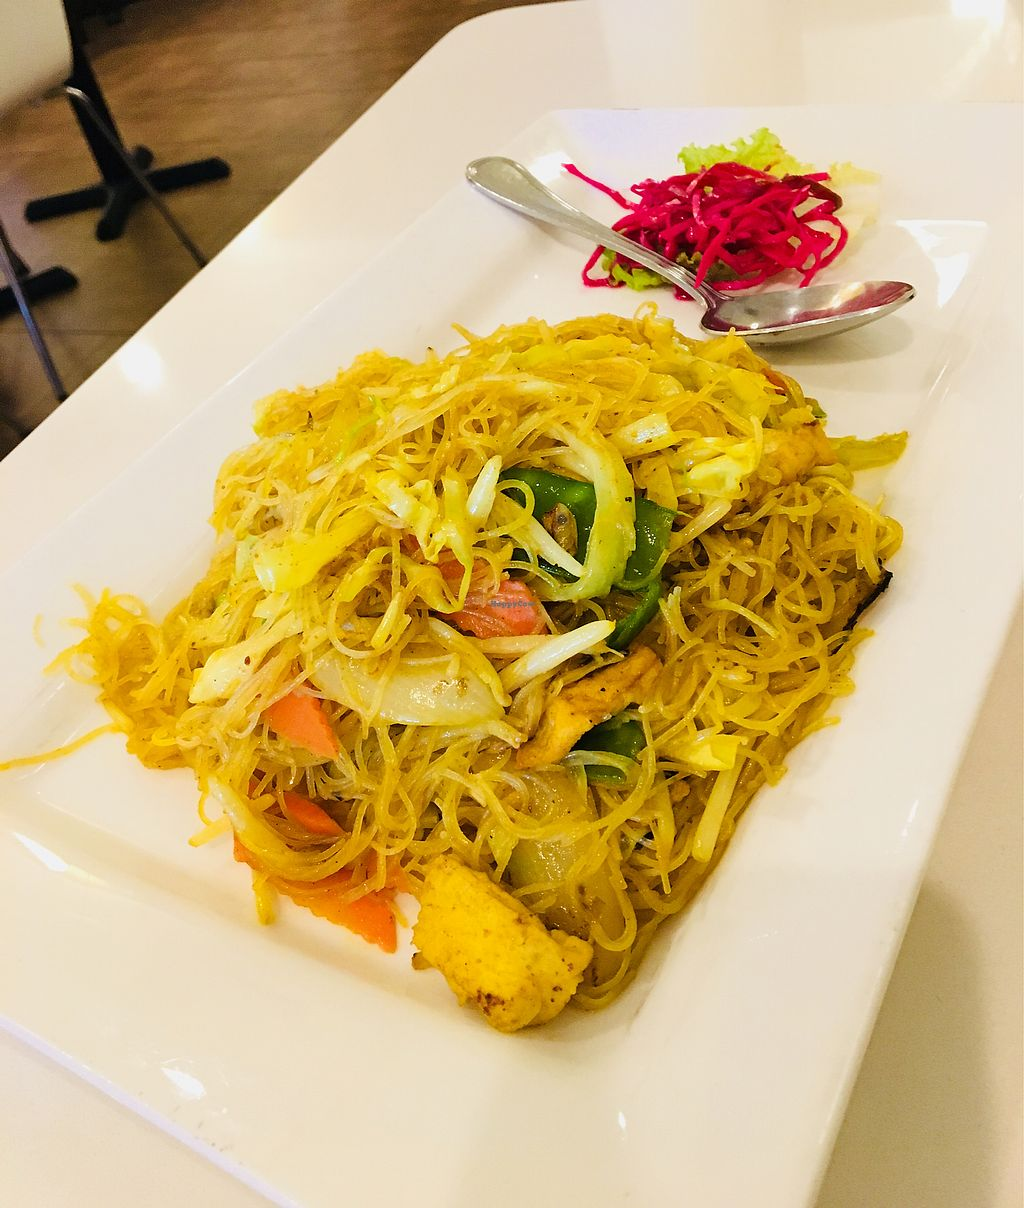 "Photo of Loving Hut - Milpitas  by <a href=""/members/profile/Clean%26Green"">Clean&Green</a> <br/>Singapore curry mi fun <br/> January 22, 2018  - <a href='/contact/abuse/image/14709/349922'>Report</a>"